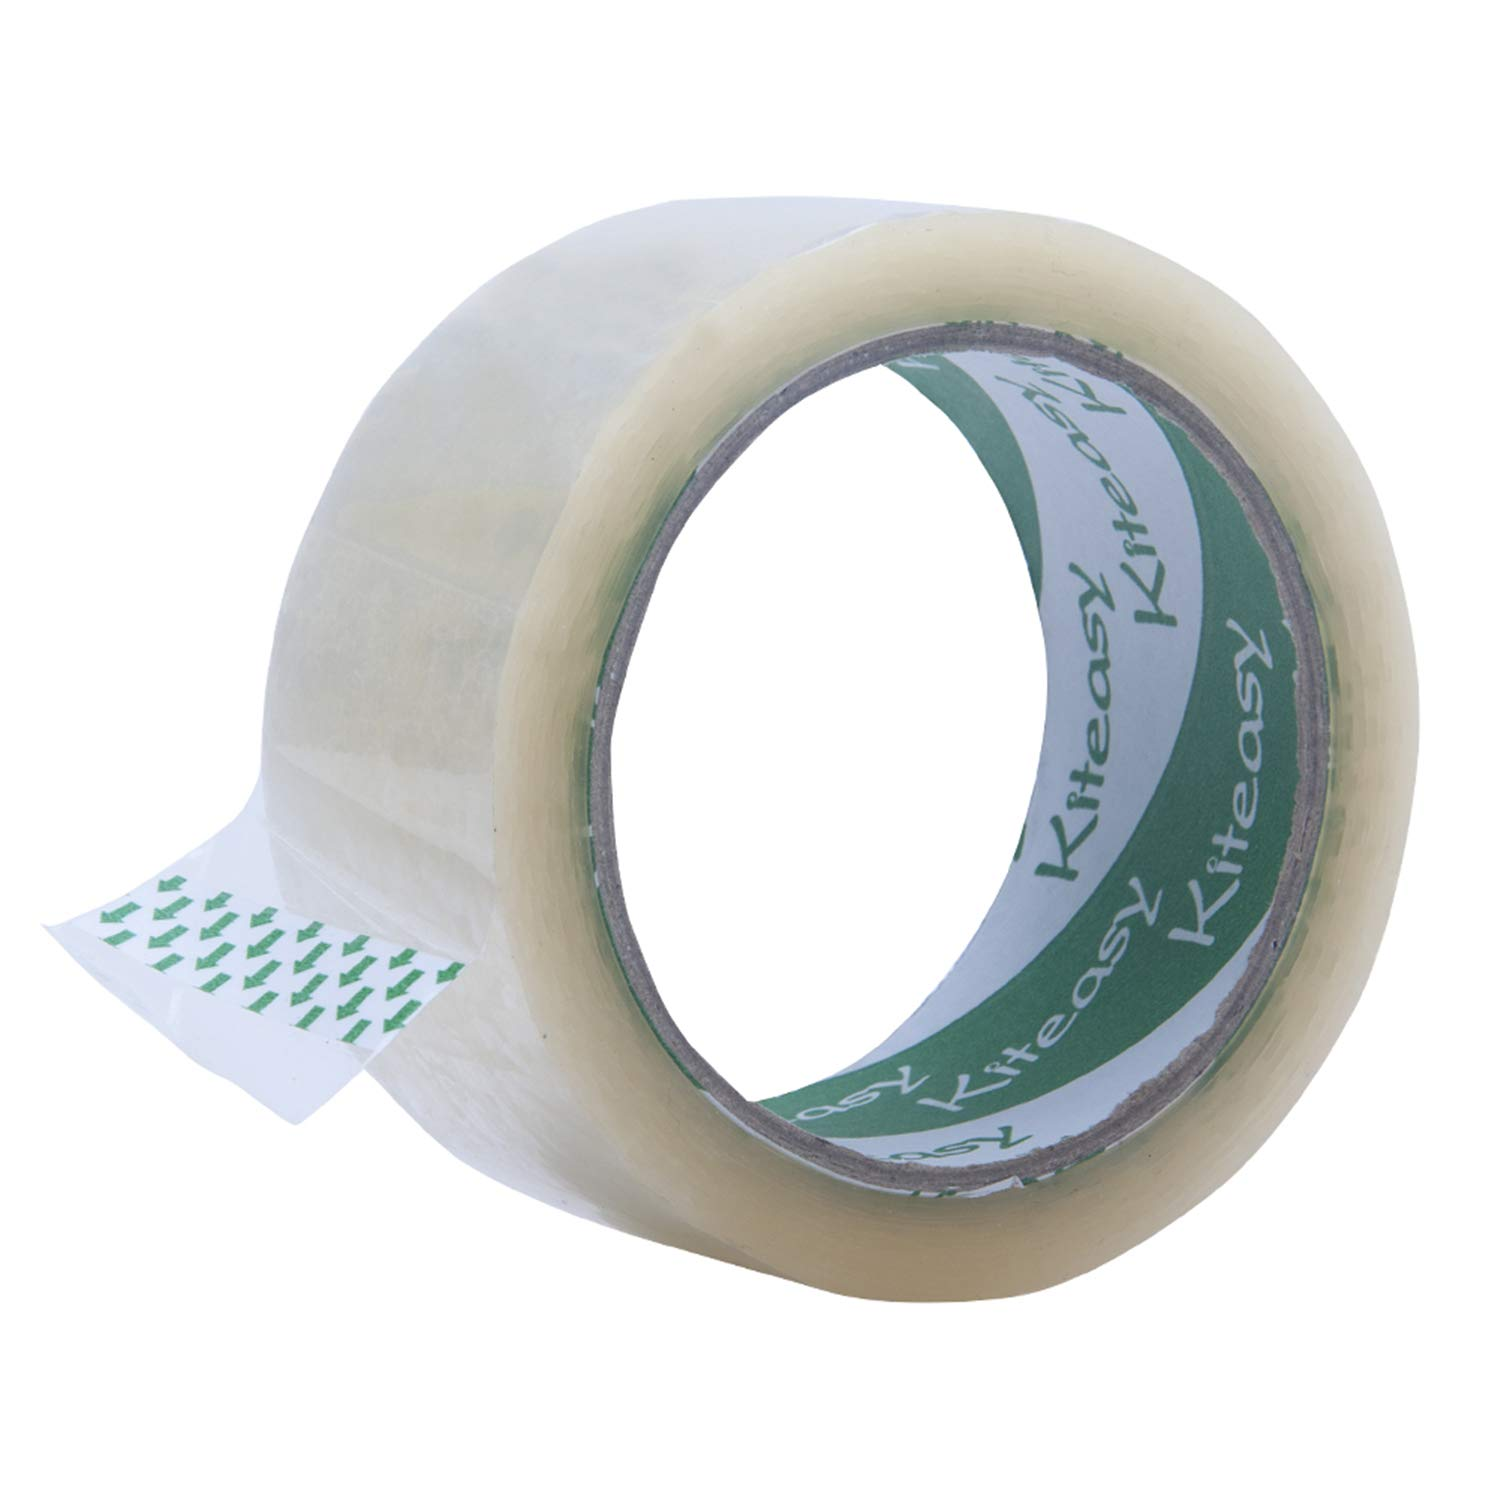 Heavy Duty Packing Tape - KITEASY Clear Shipping Packaging Tape Luggage Packing Tape Refill For Moving, Shipping, Storage, Office Including 6 Rolls 1.8in x 65Yd 3.2mil Thickness